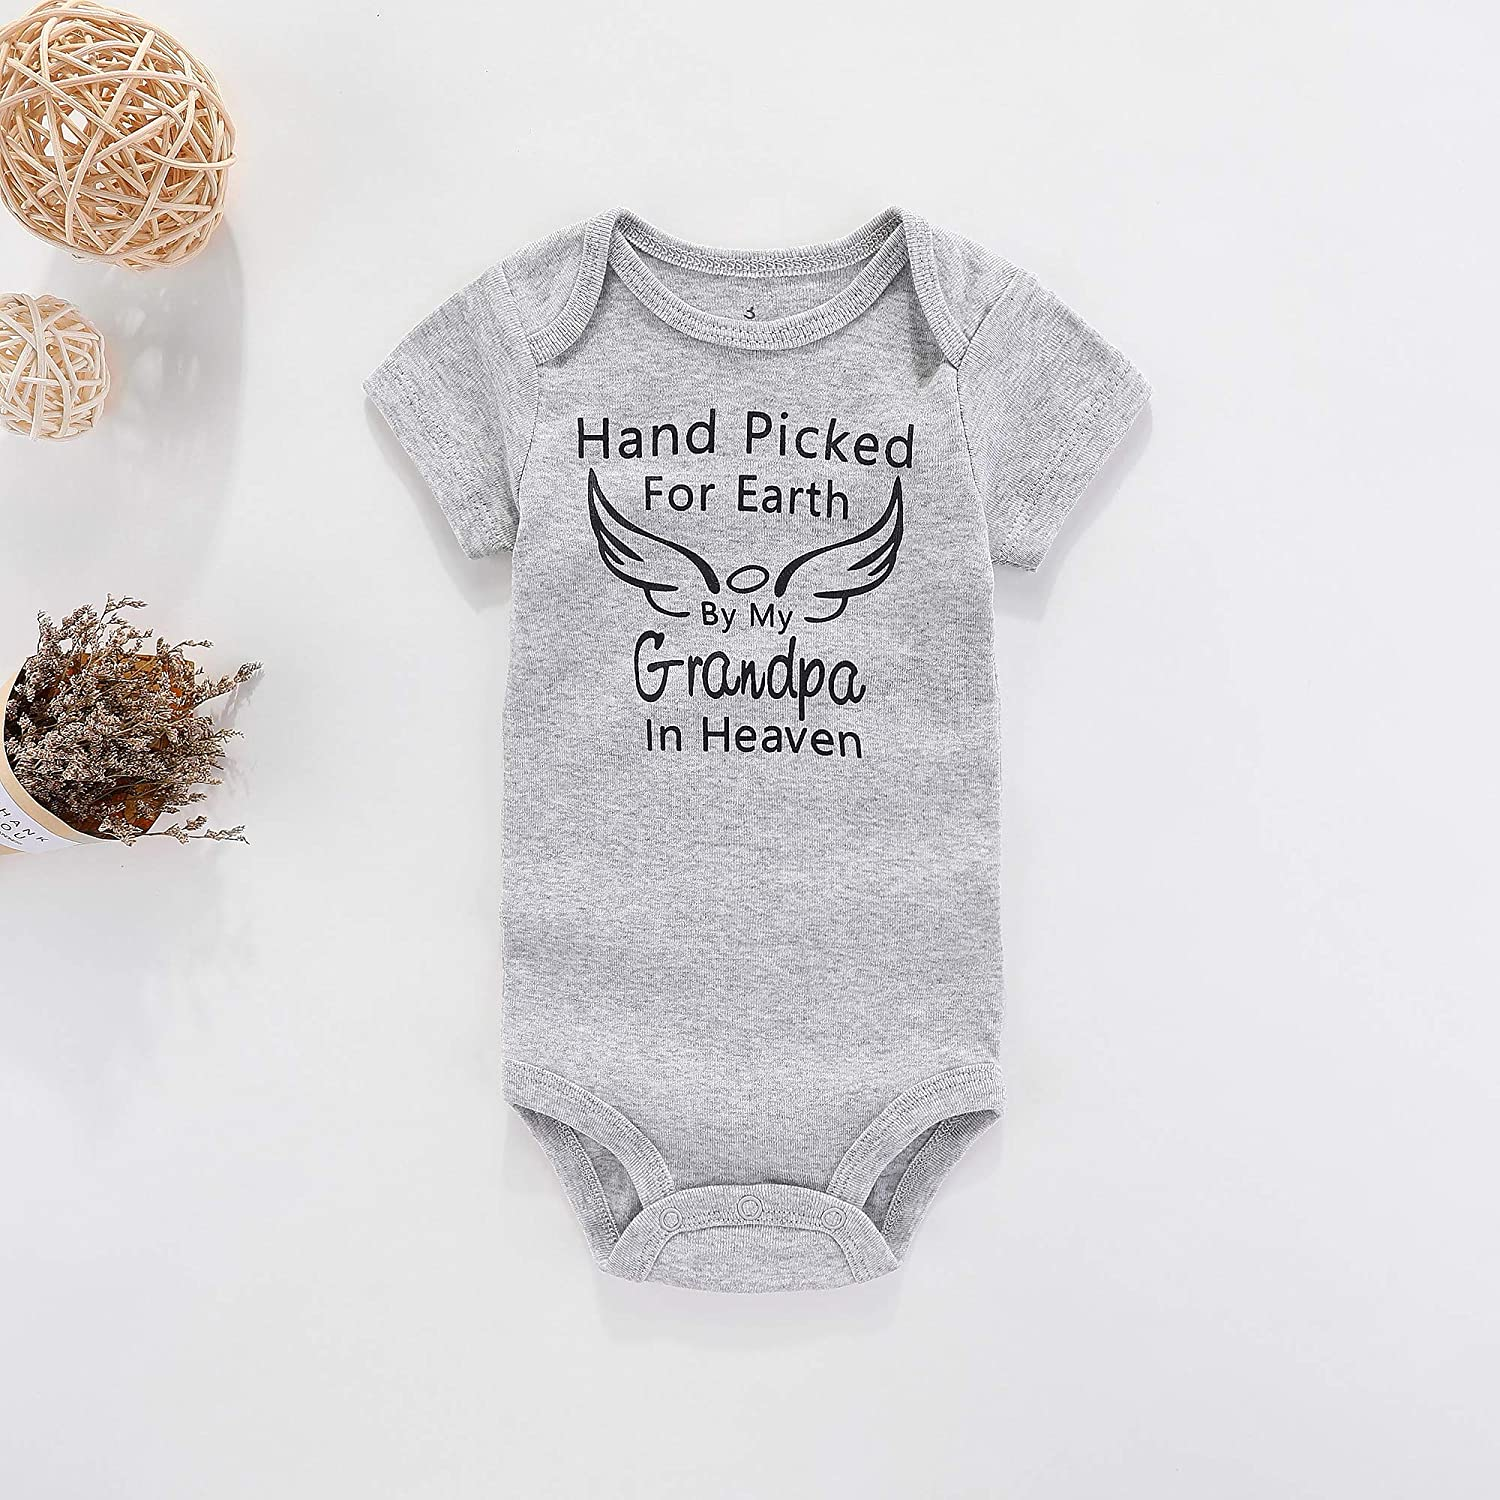 Amberetech Baby Romper Hand Picked for Earth by My Grandpa//Grandma in Heaven Baby Boys Girls Bodysuit